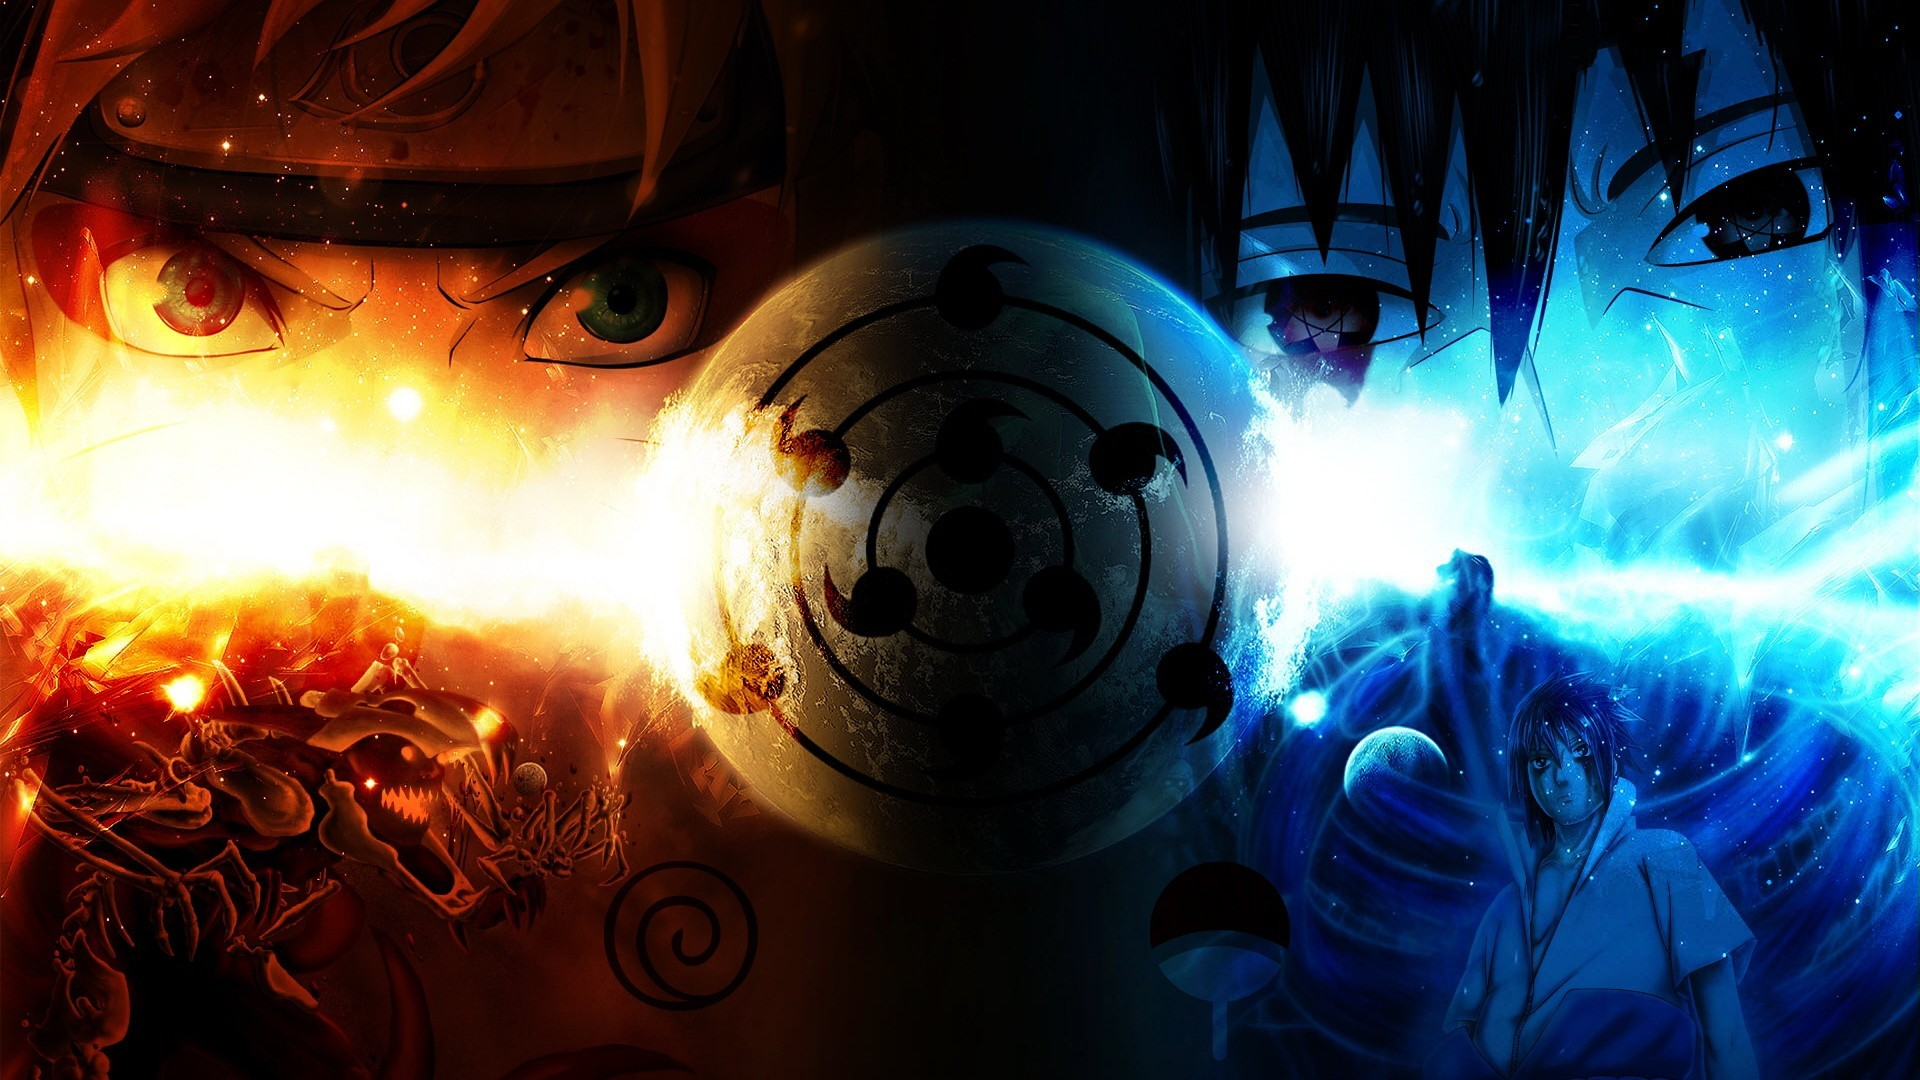 Hd Naruto Wallpaper For Mobile And Desktop